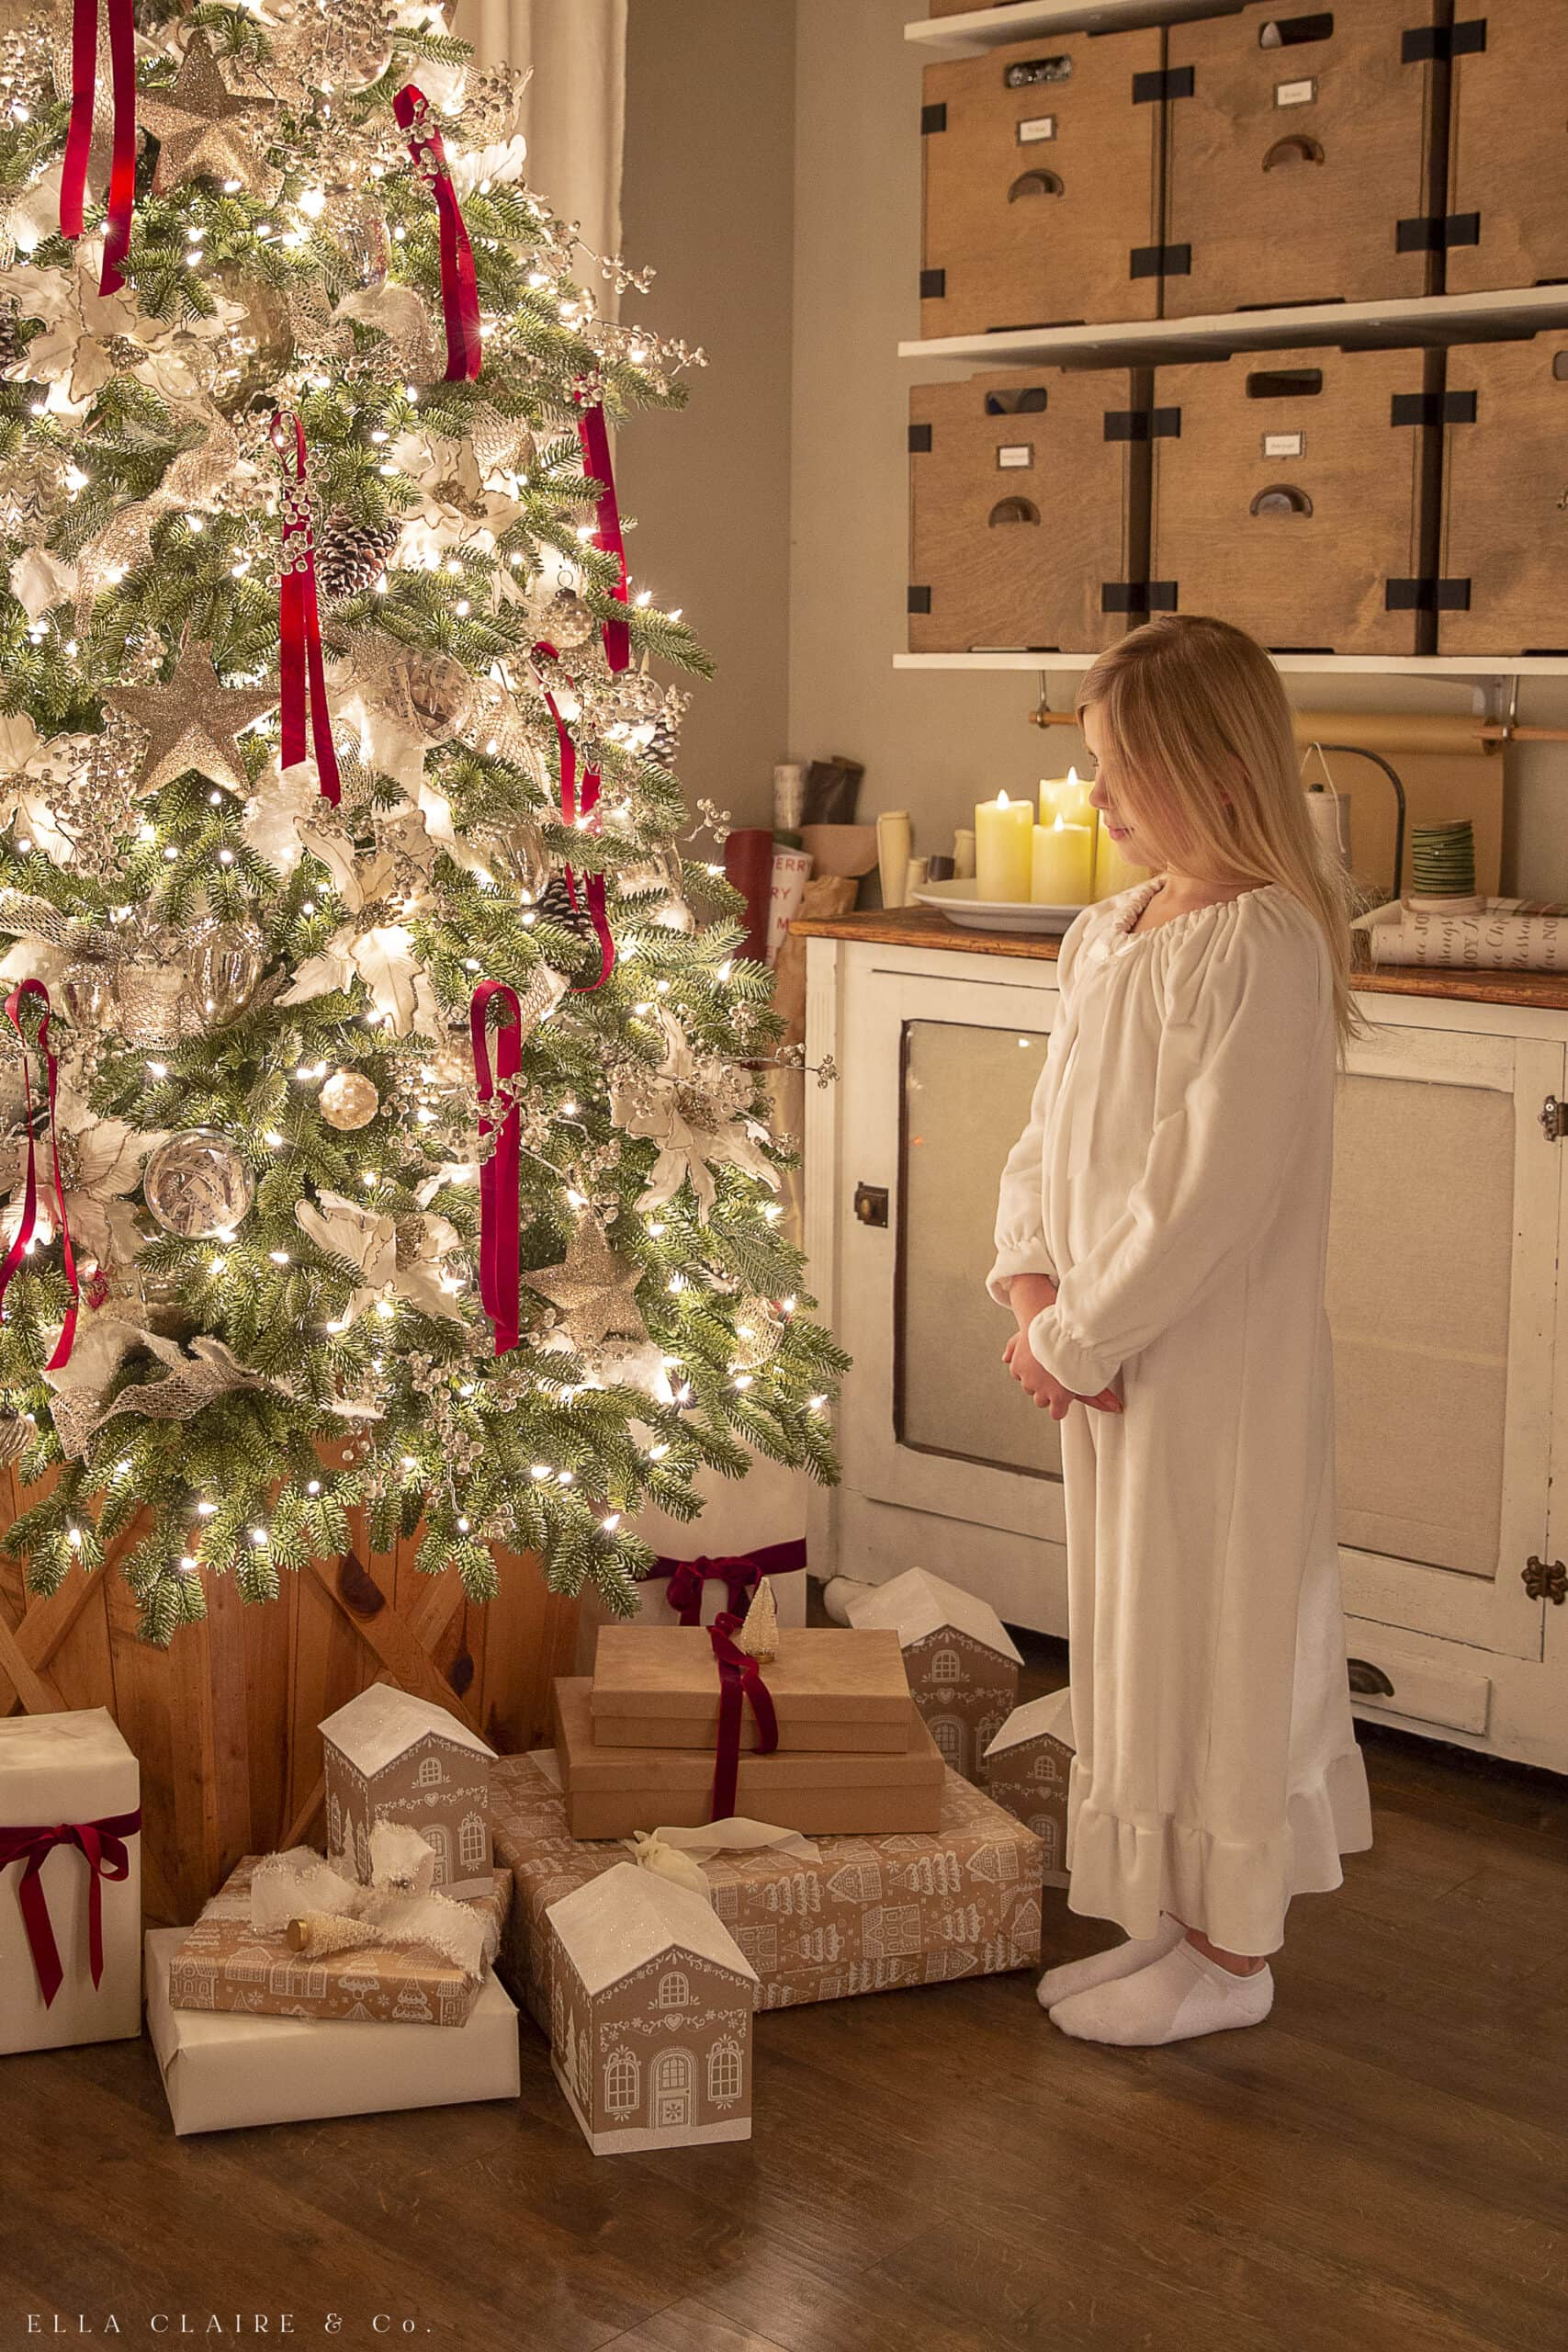 little girl in nightgown. looking at Christmas tree lights at night